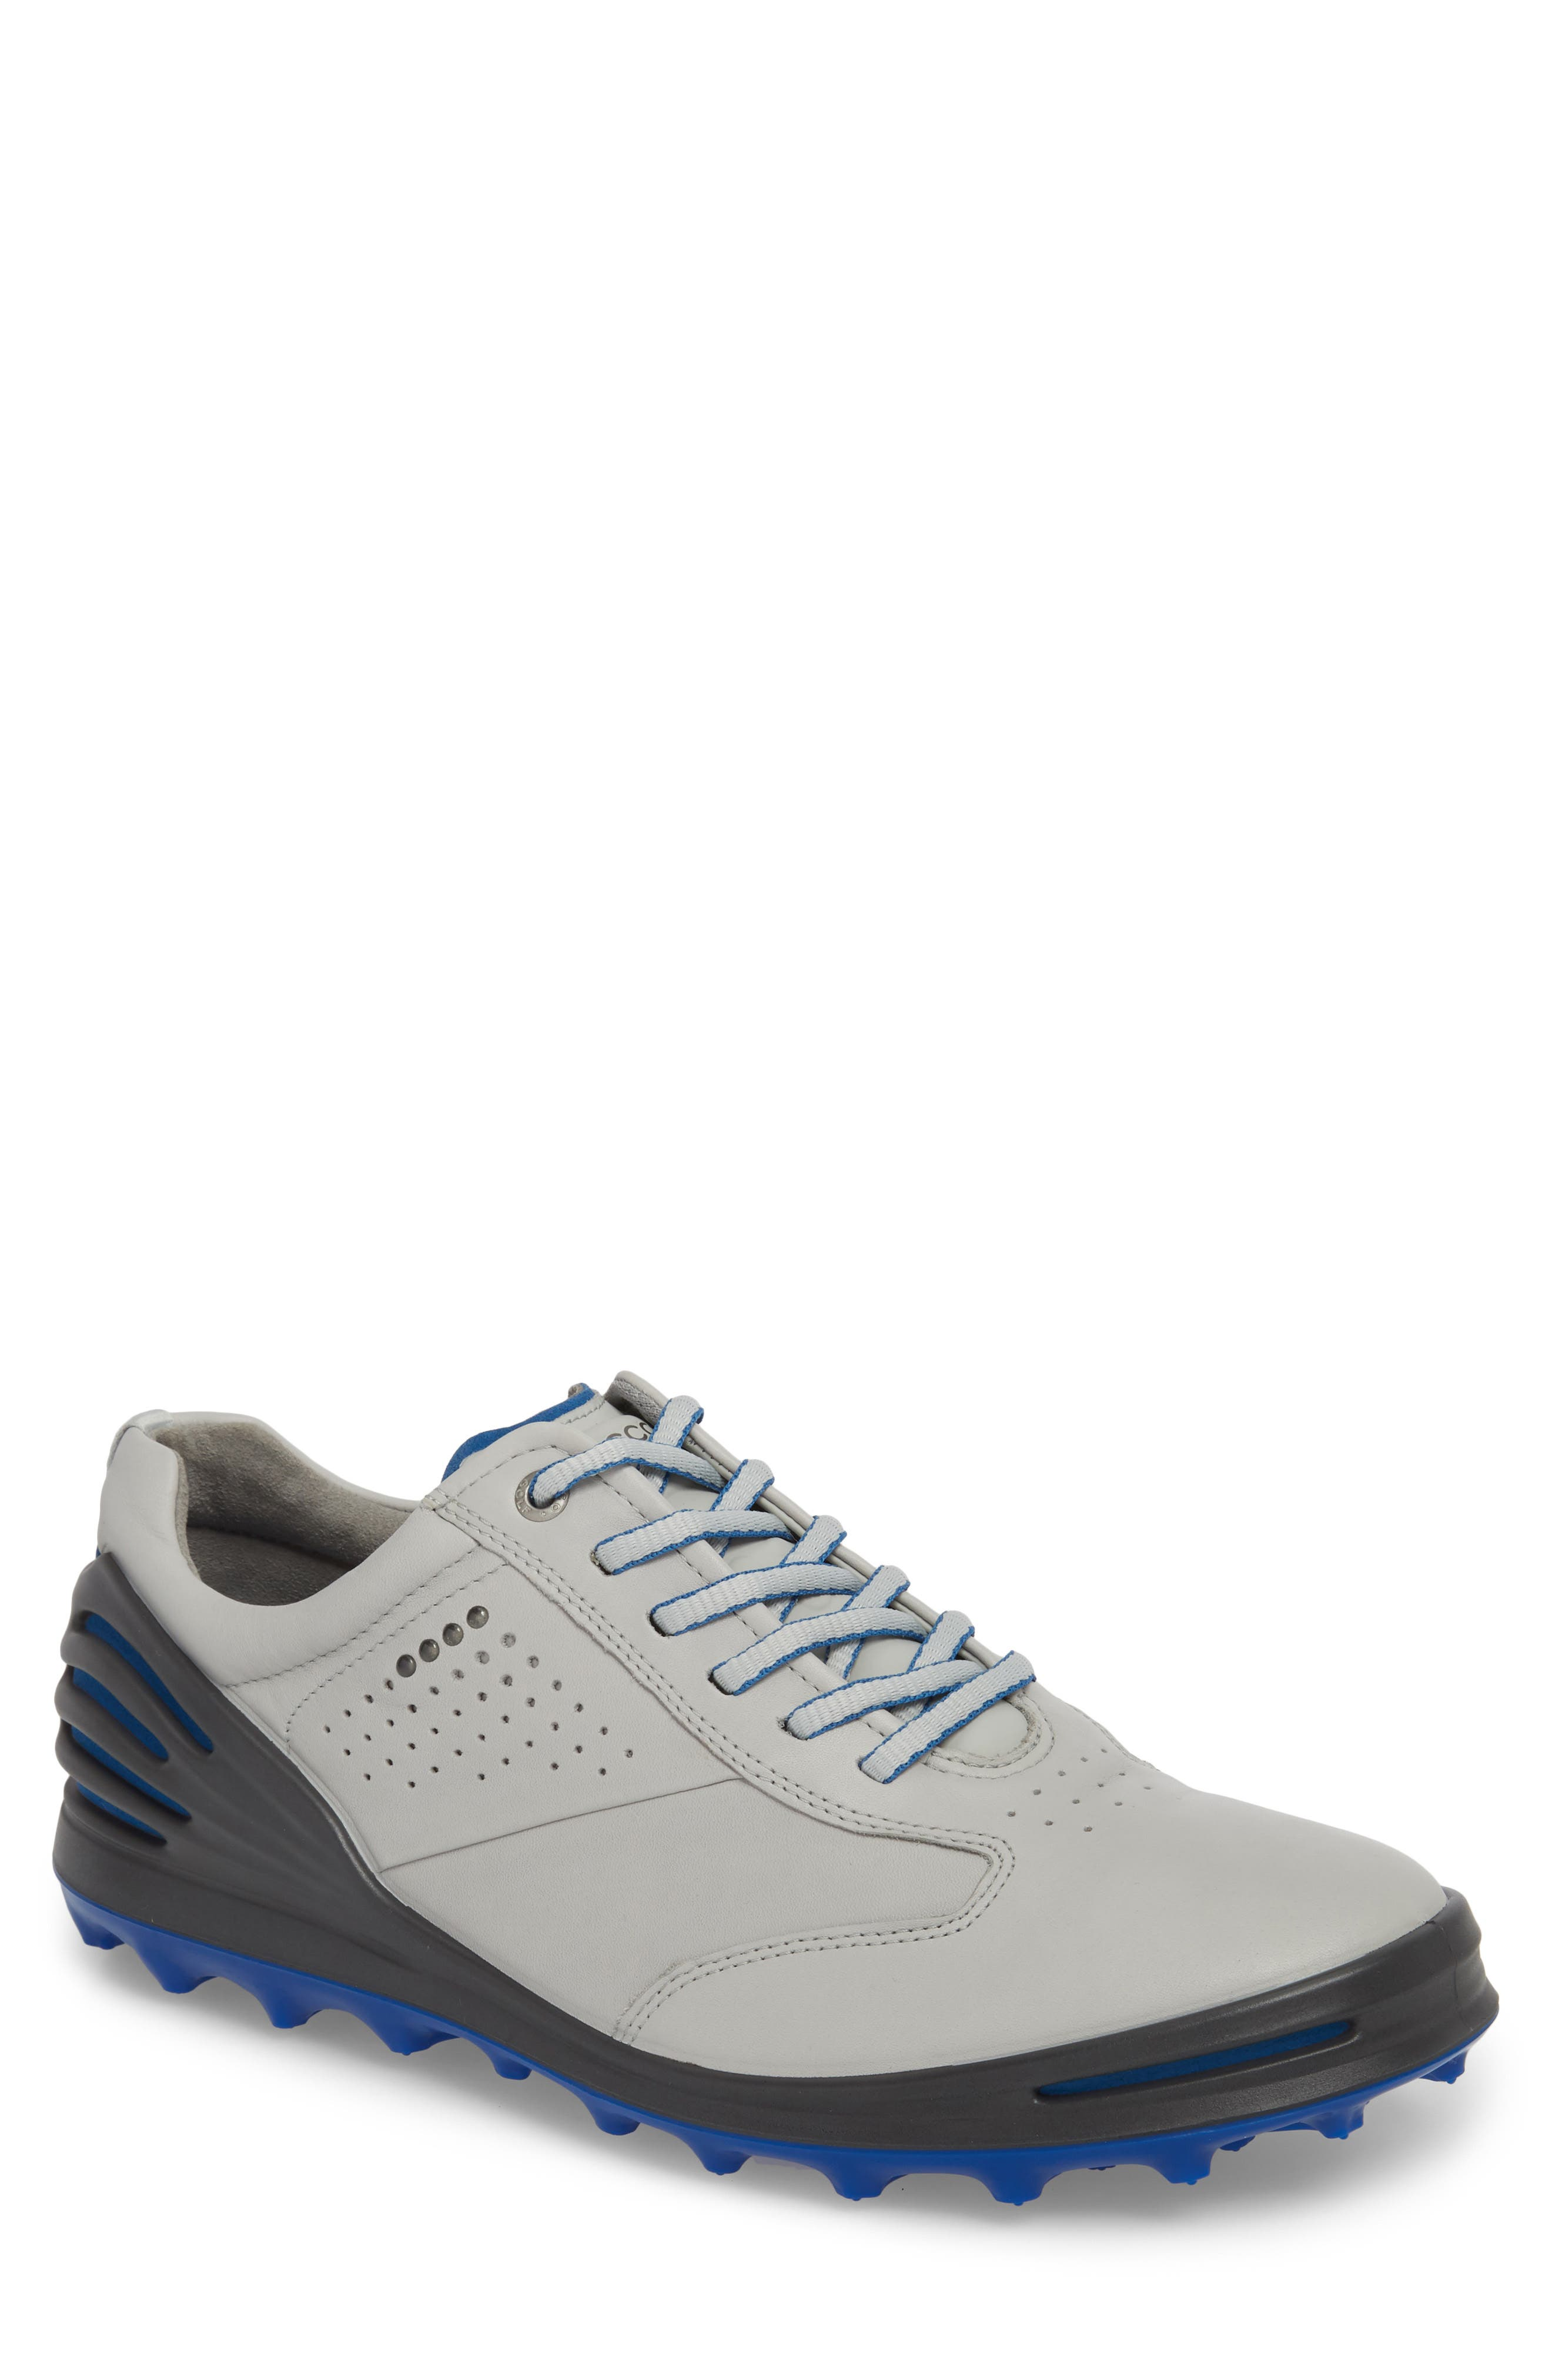 Cage Pro Golf Shoe,                             Main thumbnail 1, color,                             CONCRETE/ BERMUDA BLUE LEATHER